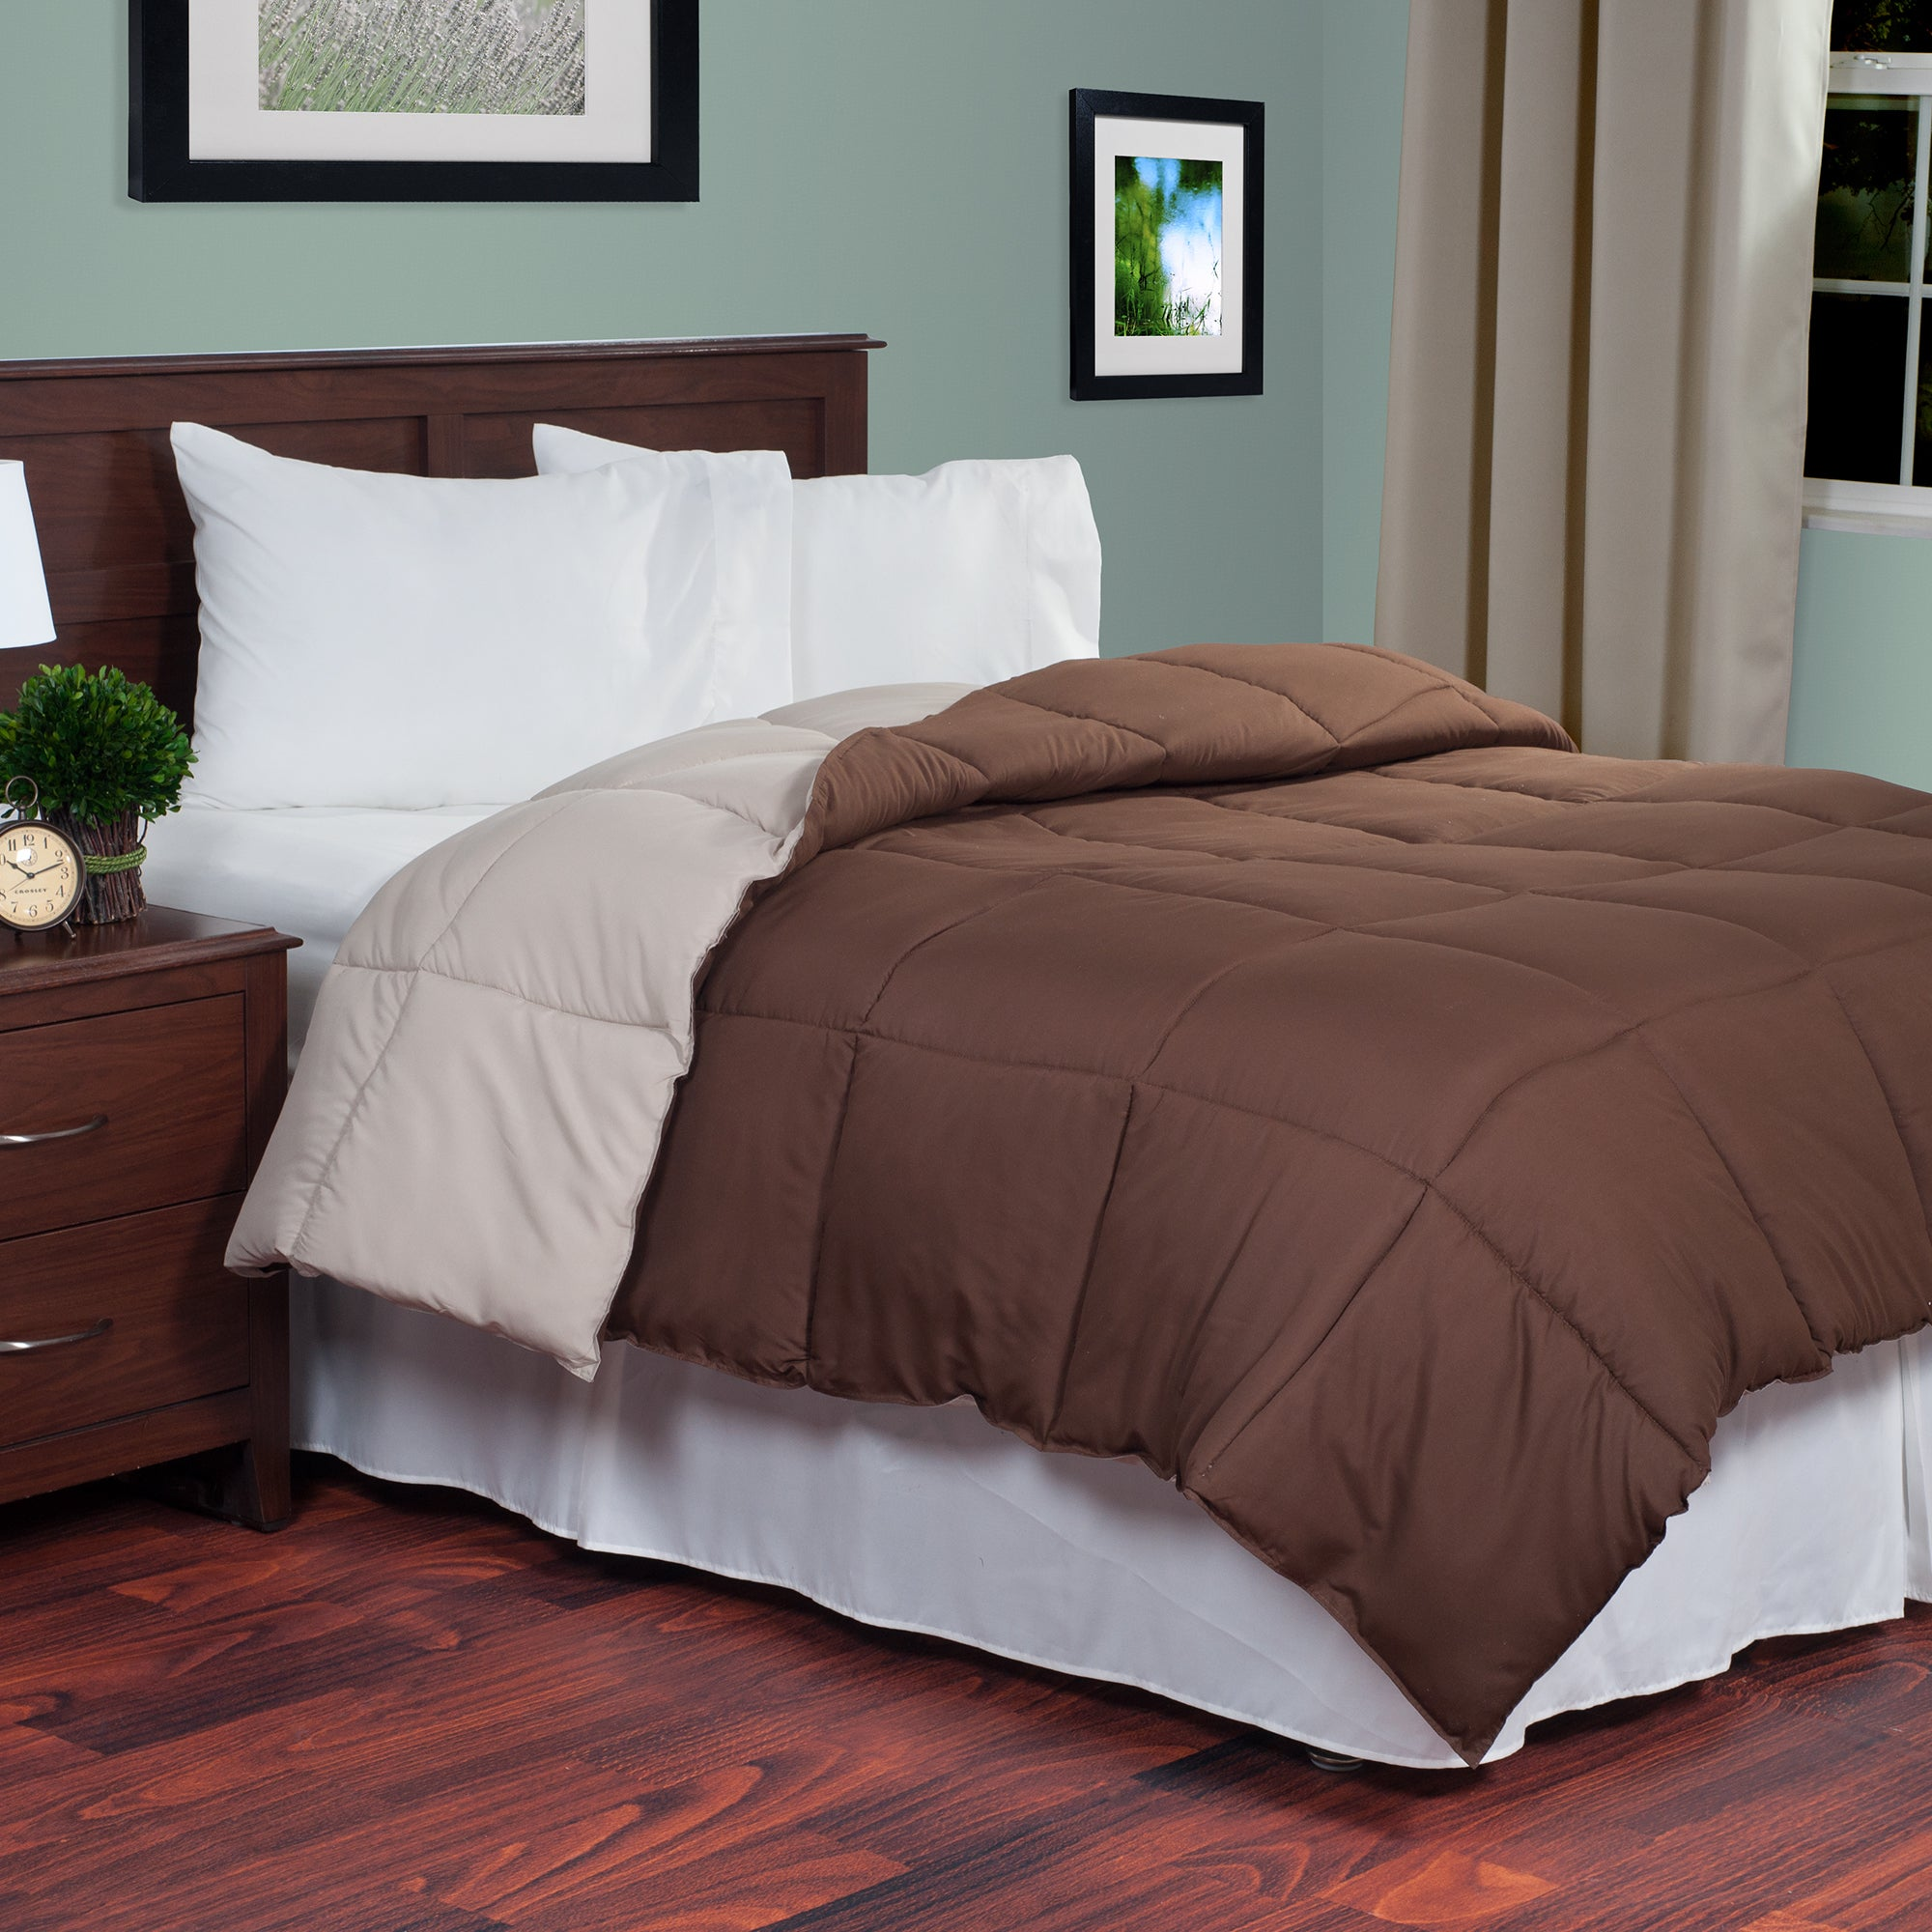 artemis shipping classics bedding overstock set piece ainsley reversible free today comforter alternative product bath creek vcny embossed down laurel home